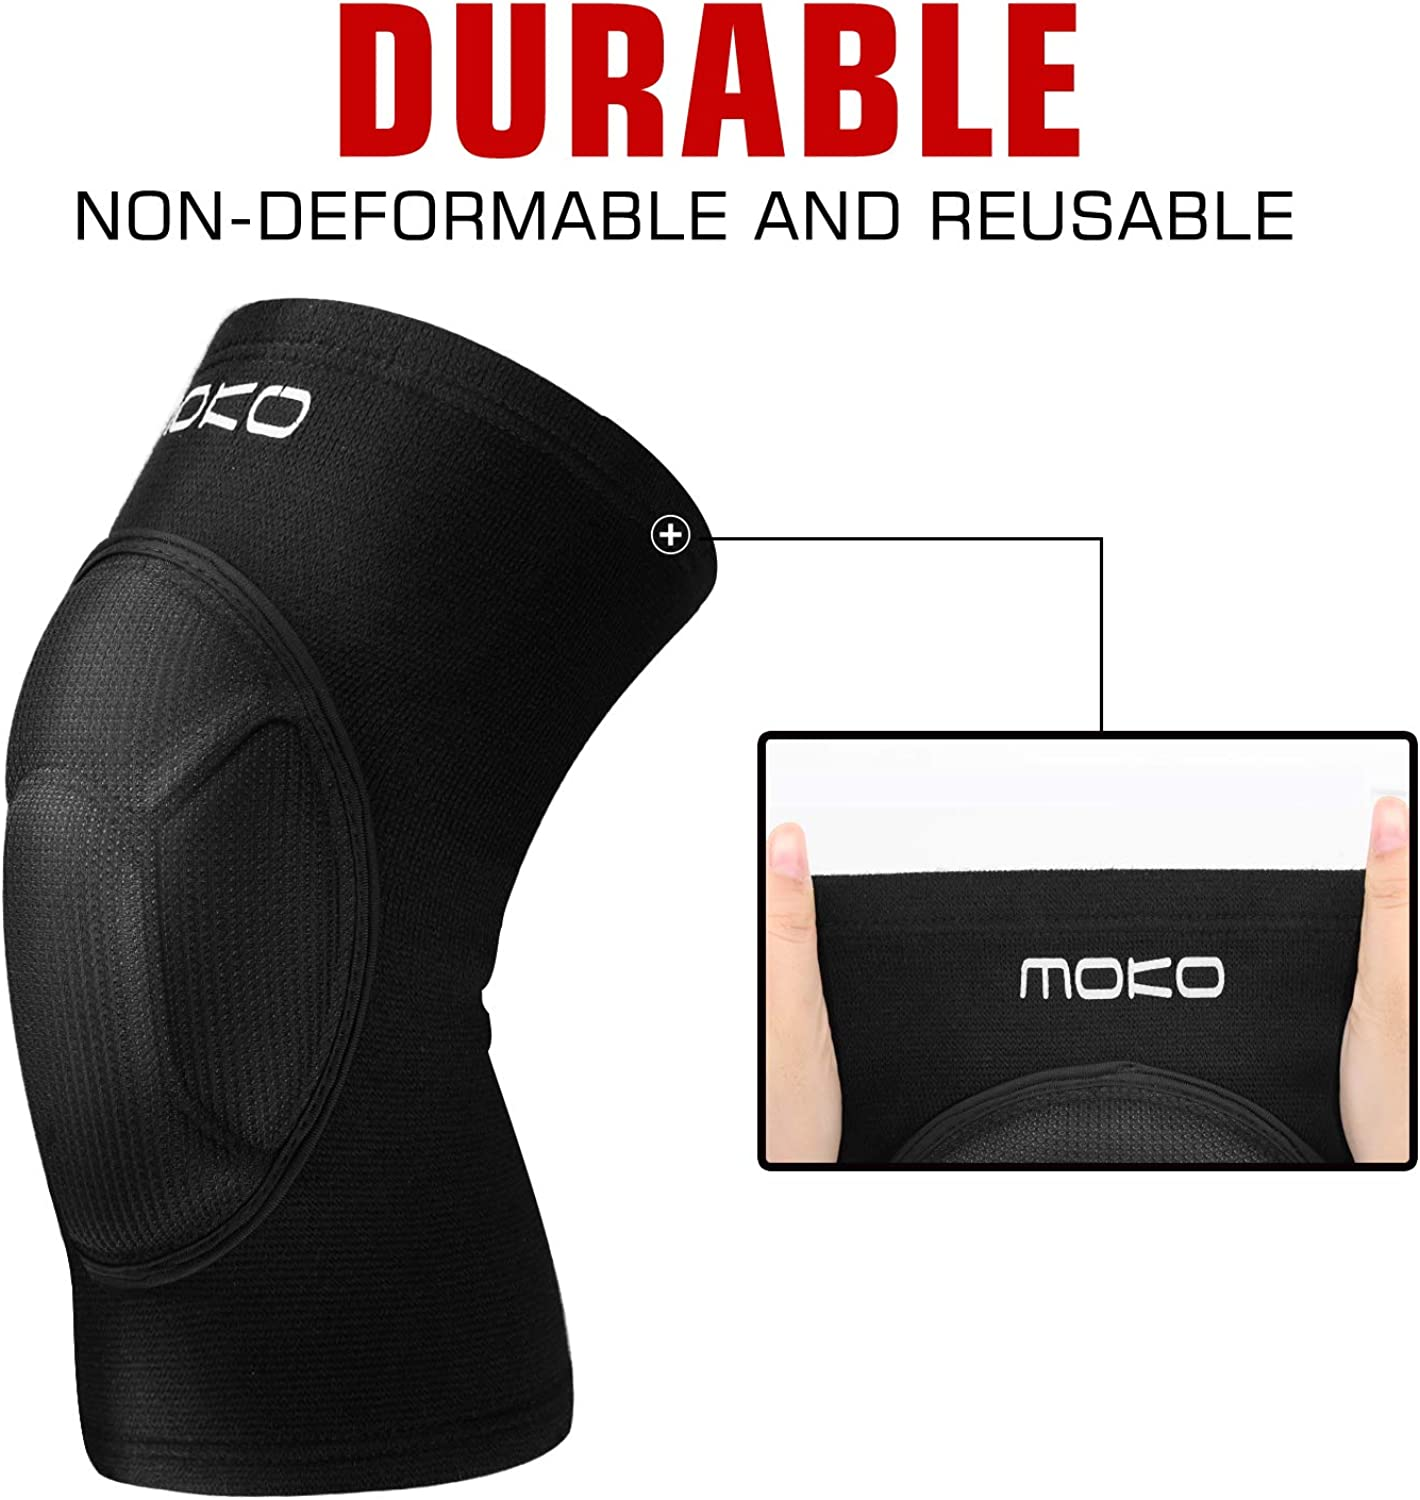 MoKo Knee Brace Support, Protective Volleyball Knee Pads, Professional Thick Sponge Compression Knee Sleeves for Dance Arthritis Joint Pain Relief Injury Recovery, Fit Men Women Youth, 1 Pair, Black : Clothing